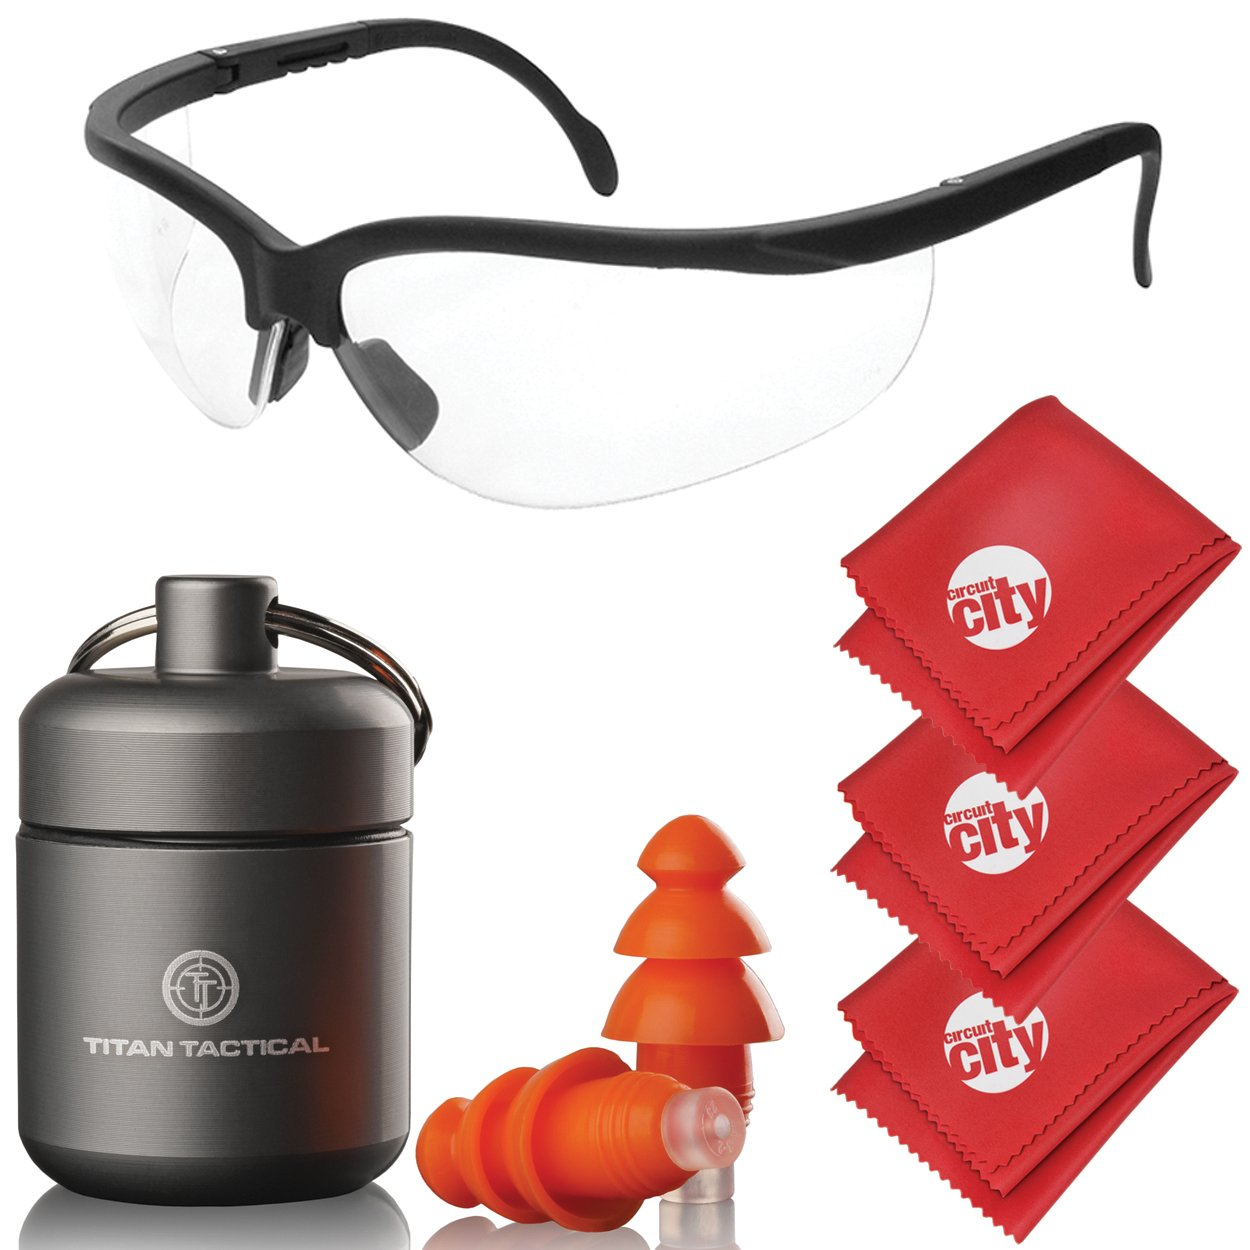 Titan Tactical Eyes + Ear Protection Kit w/ 29NRR Reusable Shooting Ear Plugs + Mil-Spec Clear Range Ballistic Glasses (for Normal + Small Ear Canals) by Titan Tactical